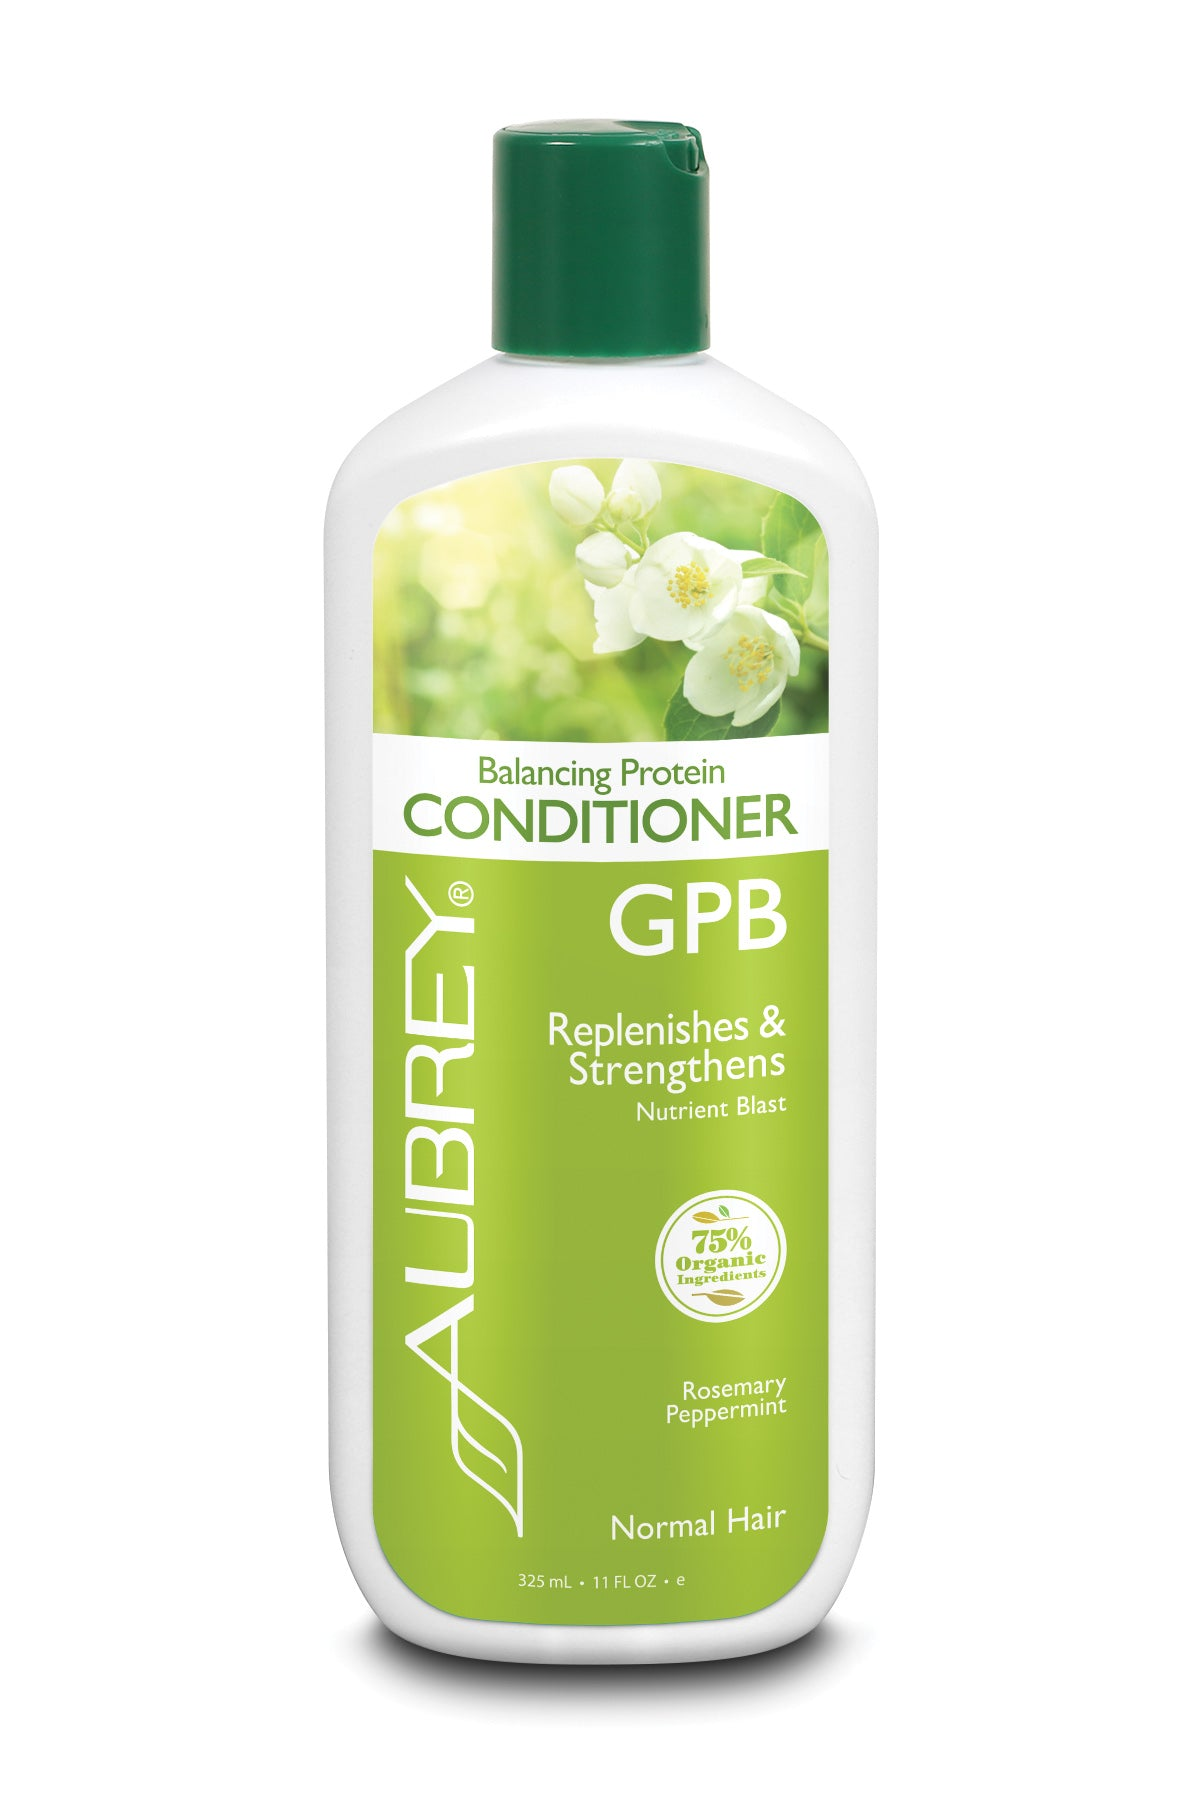 Gpb Conditioner Rosemary Peppermint - 11oz